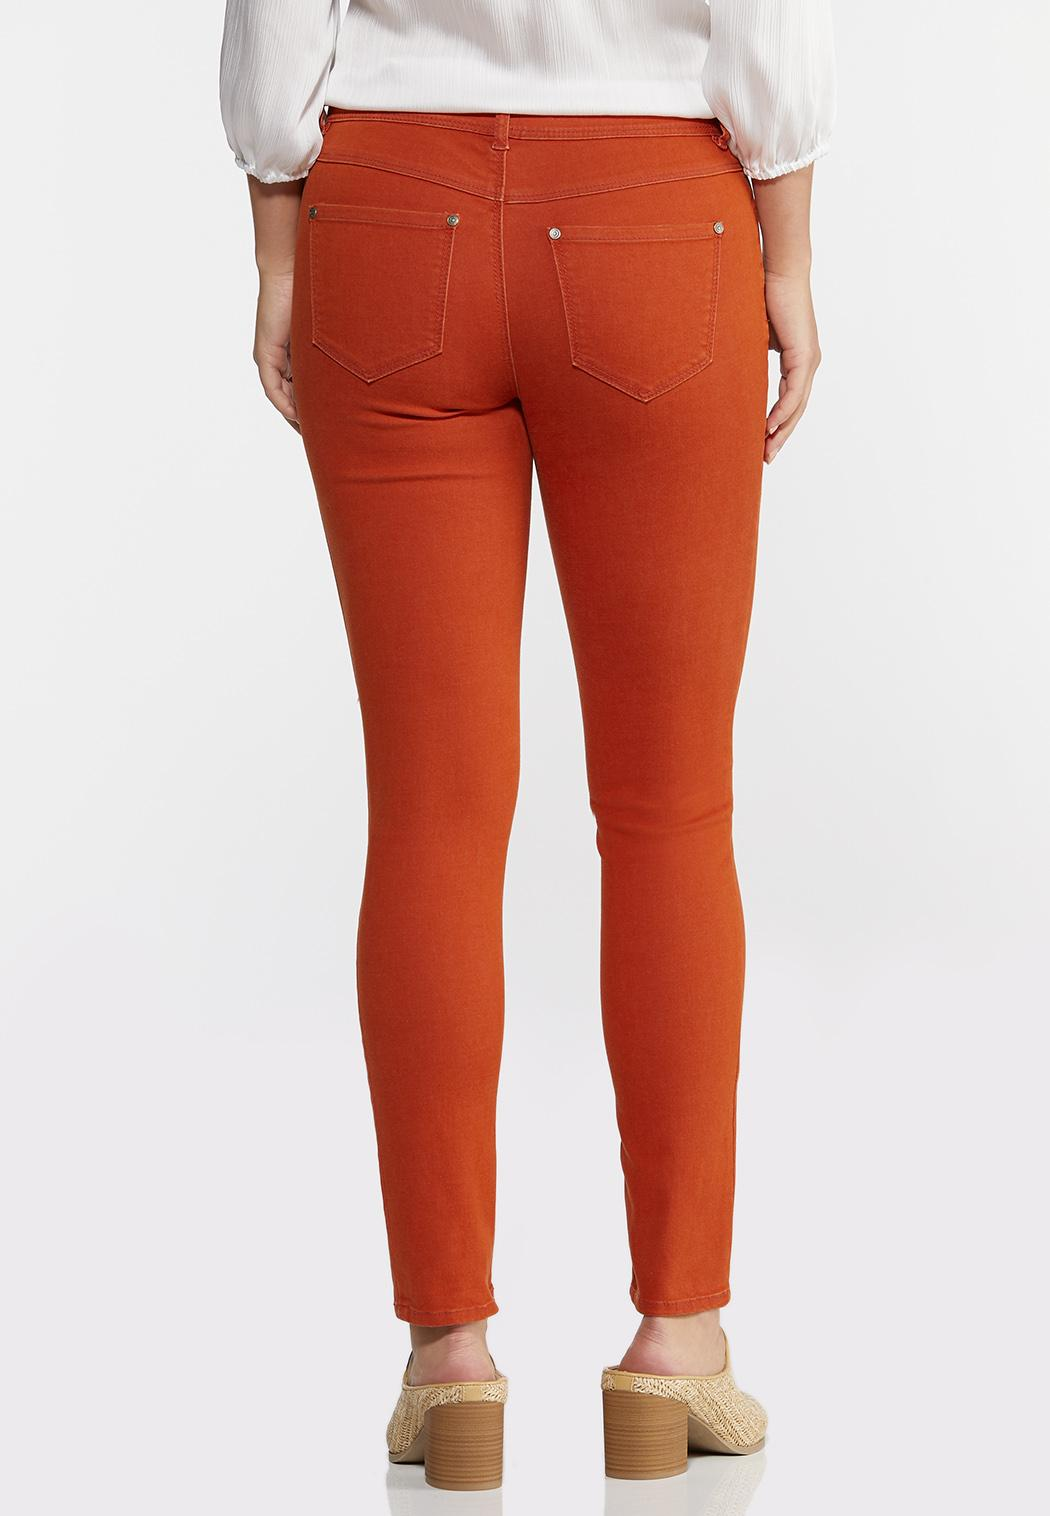 Mid-Rise Colored Skinny Jeans (Item #44332619)